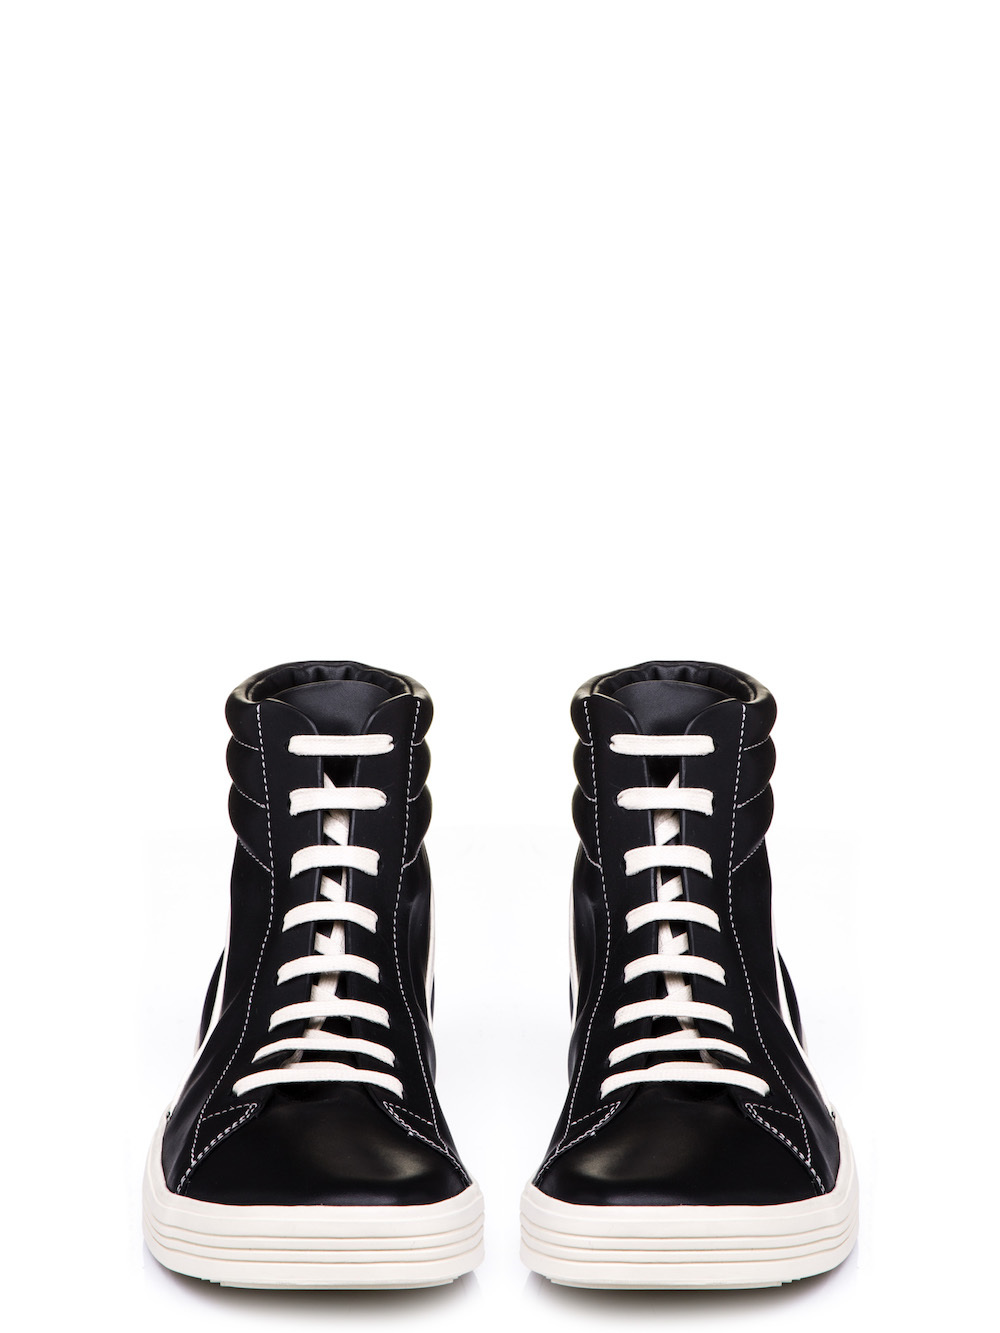 RICK OWENS GEOTHRASHER HIGH SNEAKERS IN BLACK BOSTON CALF LEATHER